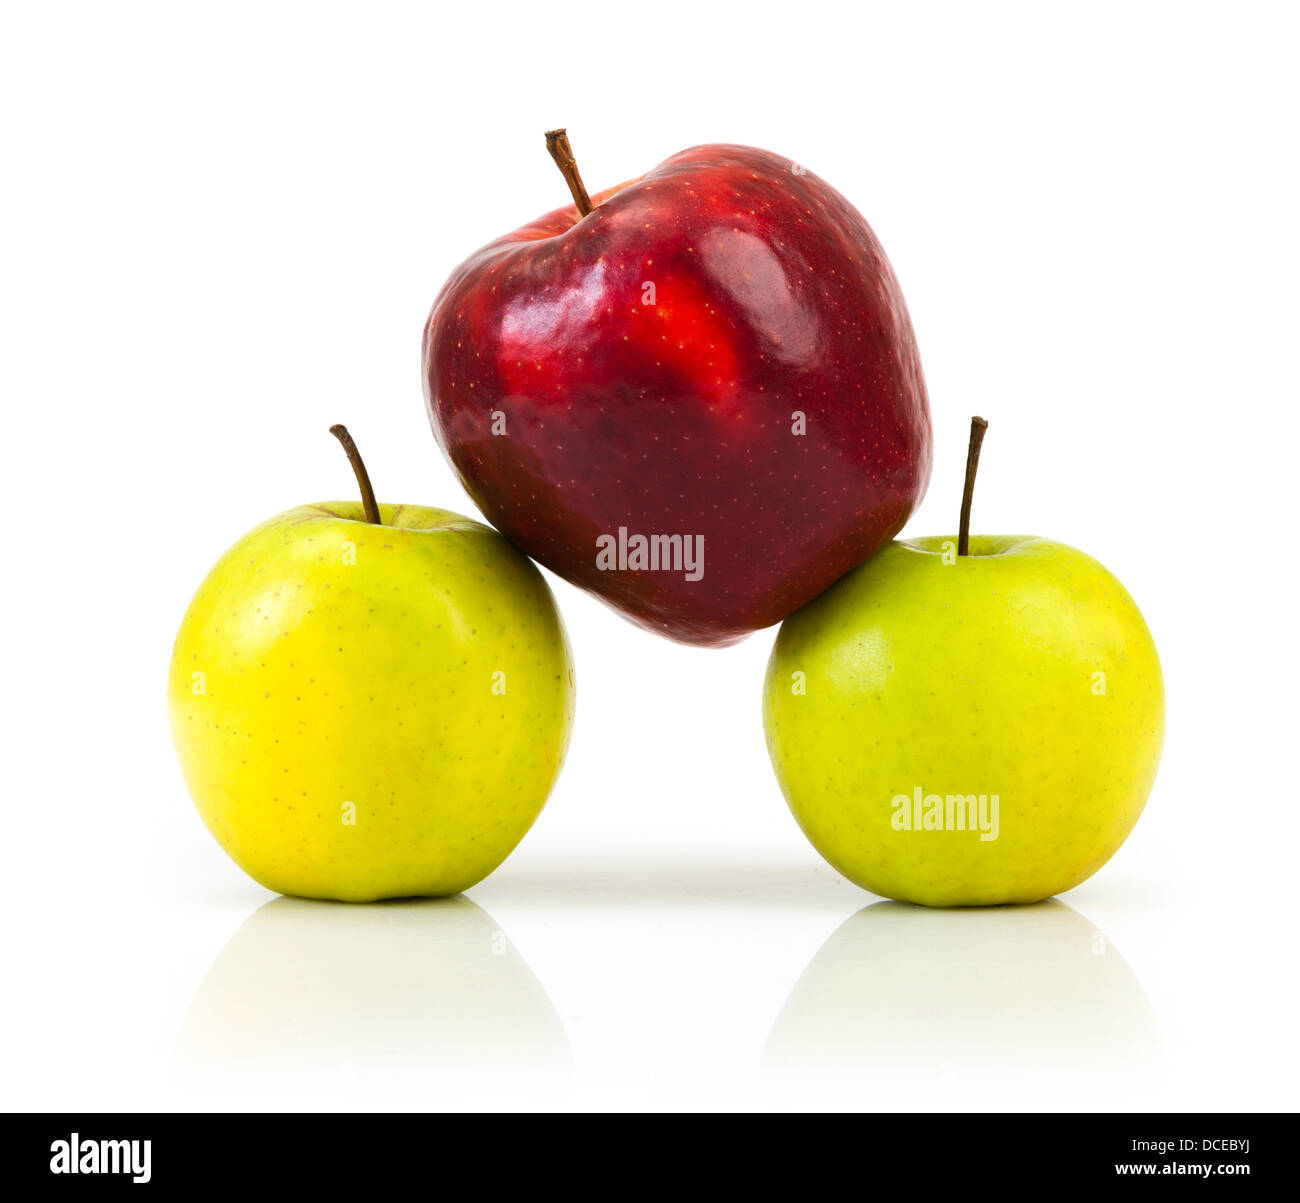 domination concepts - red apple between green apples - Stock Image